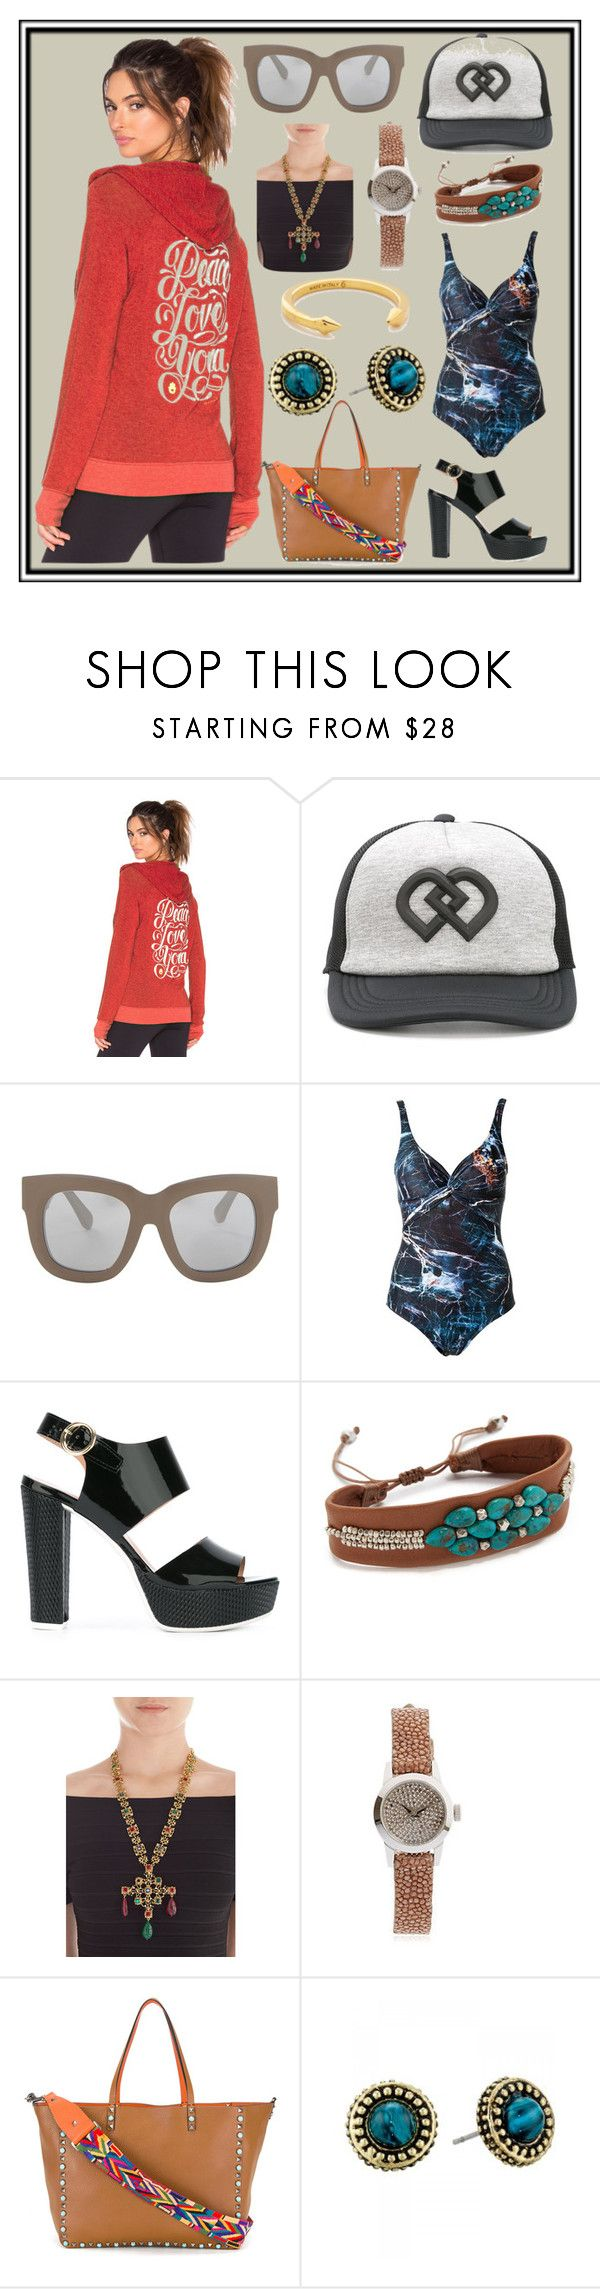 """""""See It Wear It"""" by cate-jennifer ❤ liked on Polyvore featuring Spiritual Gangster, Dsquared2, Acne Studios, Lygia & Nanny, Pollini, Chan Luu, Kenneth Jay Lane, Christian Koban, Valentino and House of Harlow 1960"""